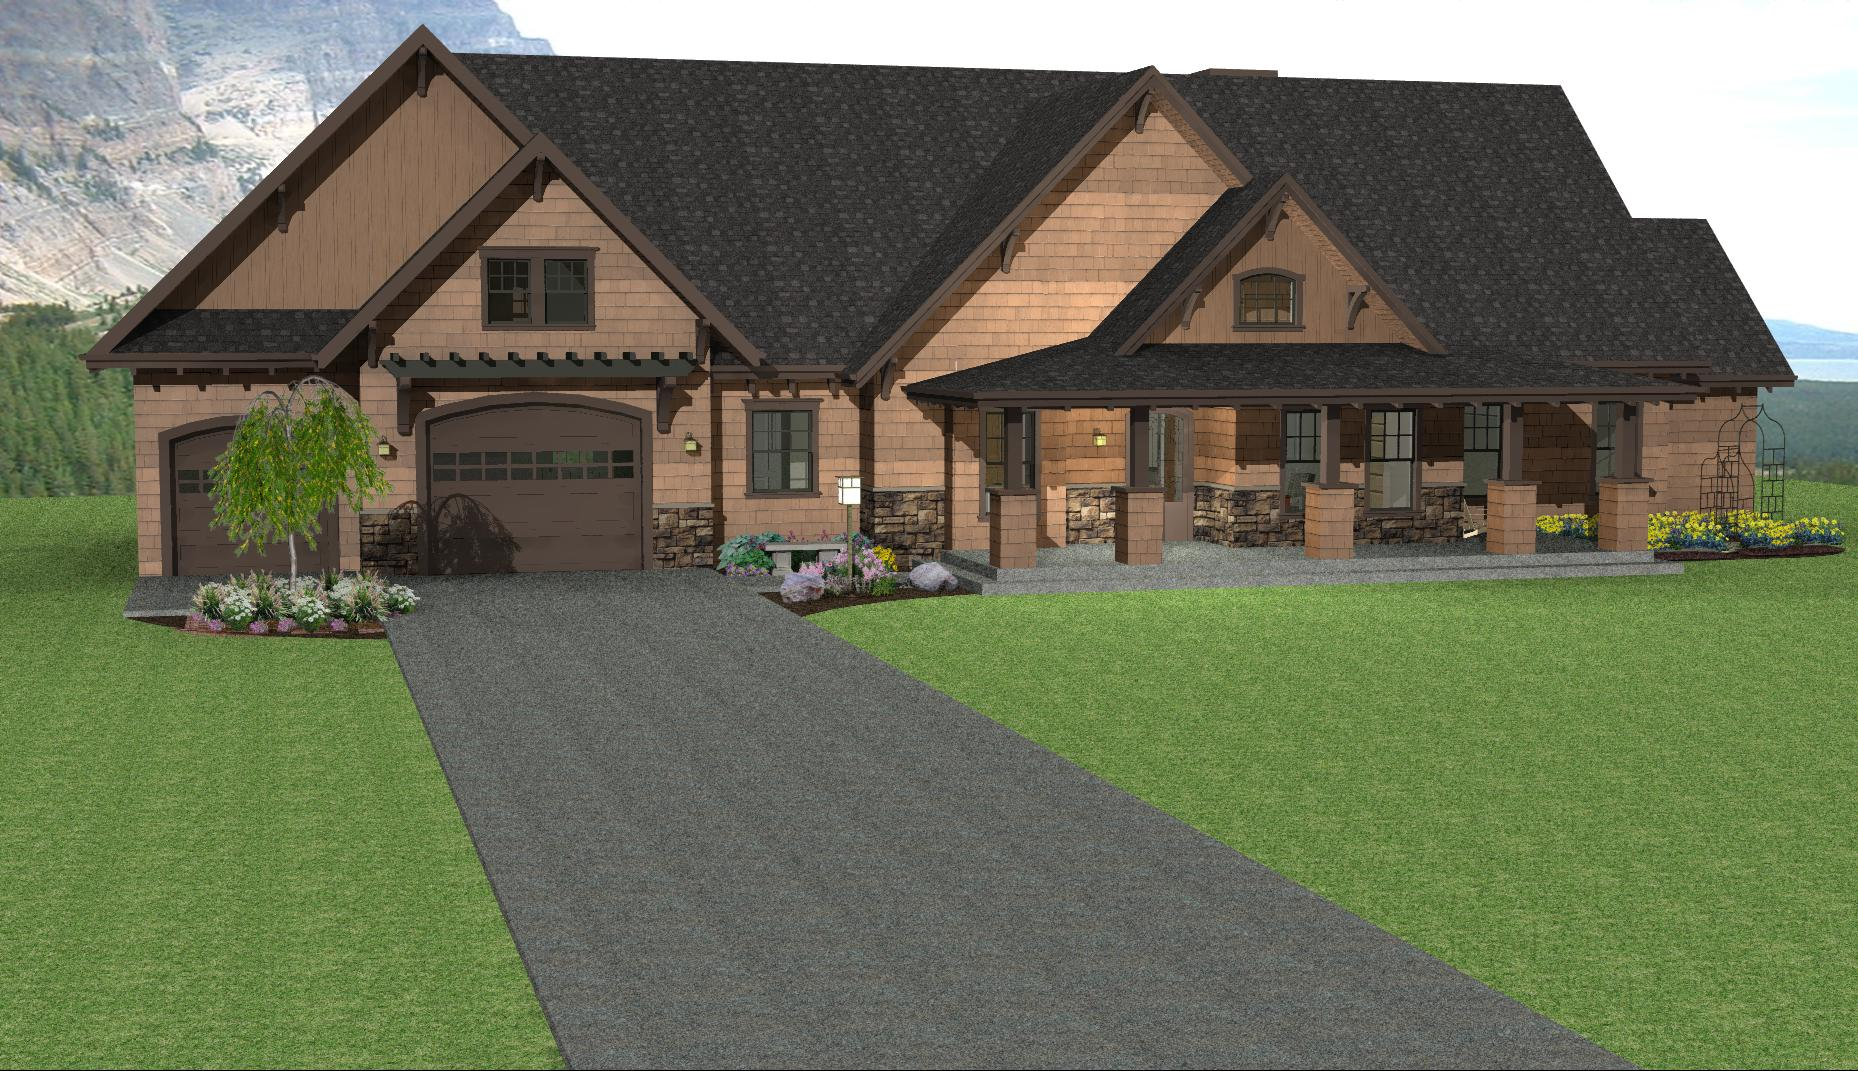 Ranch style home designs find house plans for Ranch style house designs